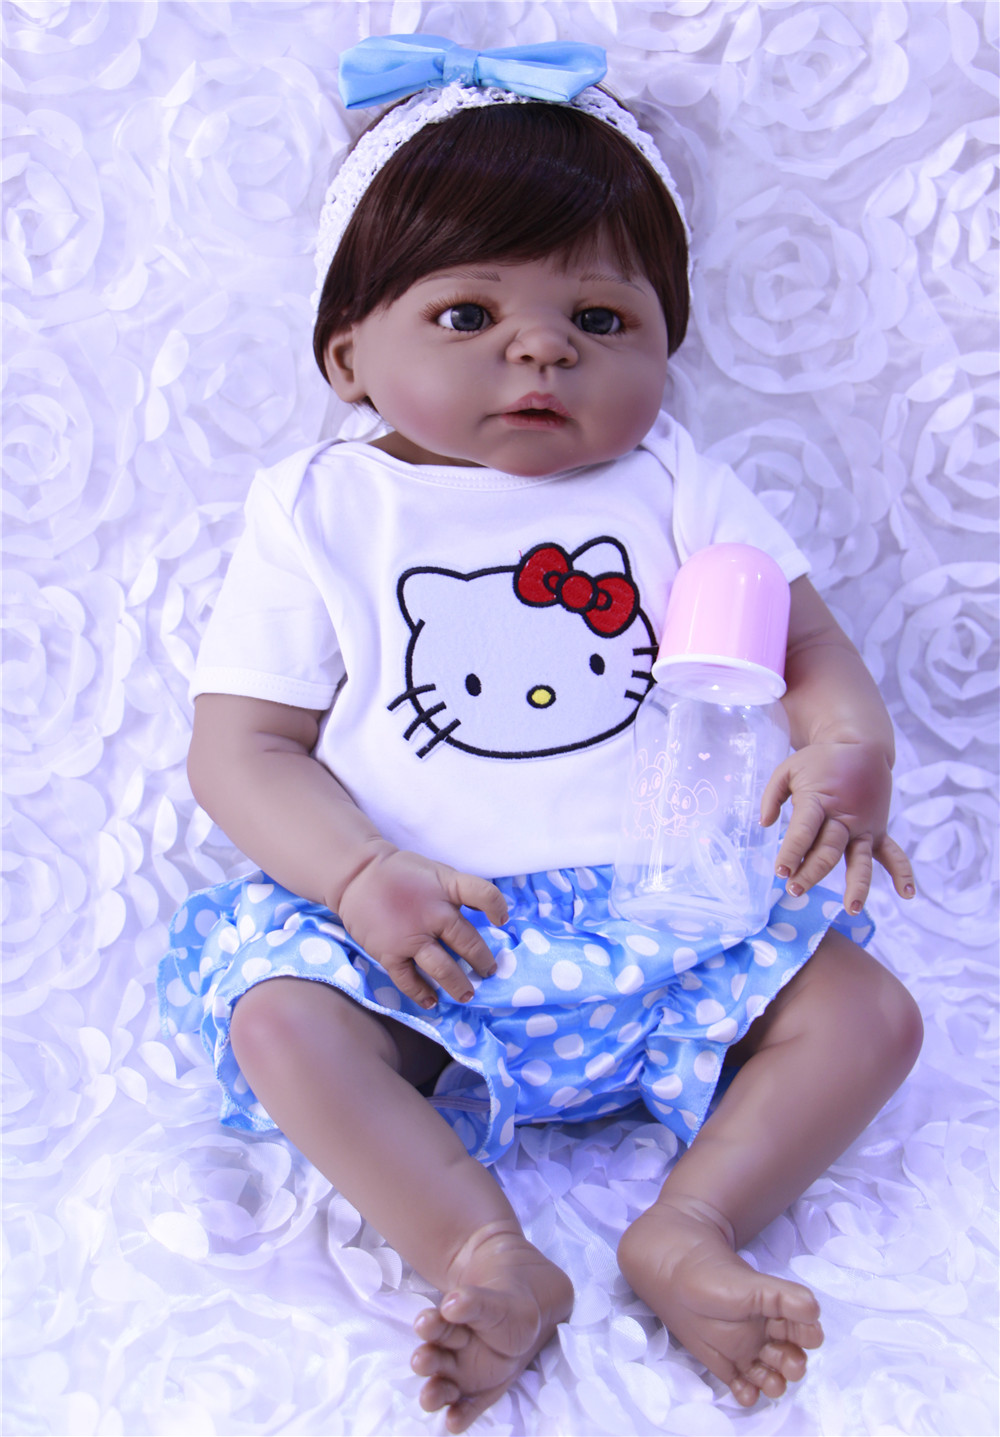 55cm NPK COLLECTION DOLL Silicone Reborn Baby Doll Toy Lifelike Real ...